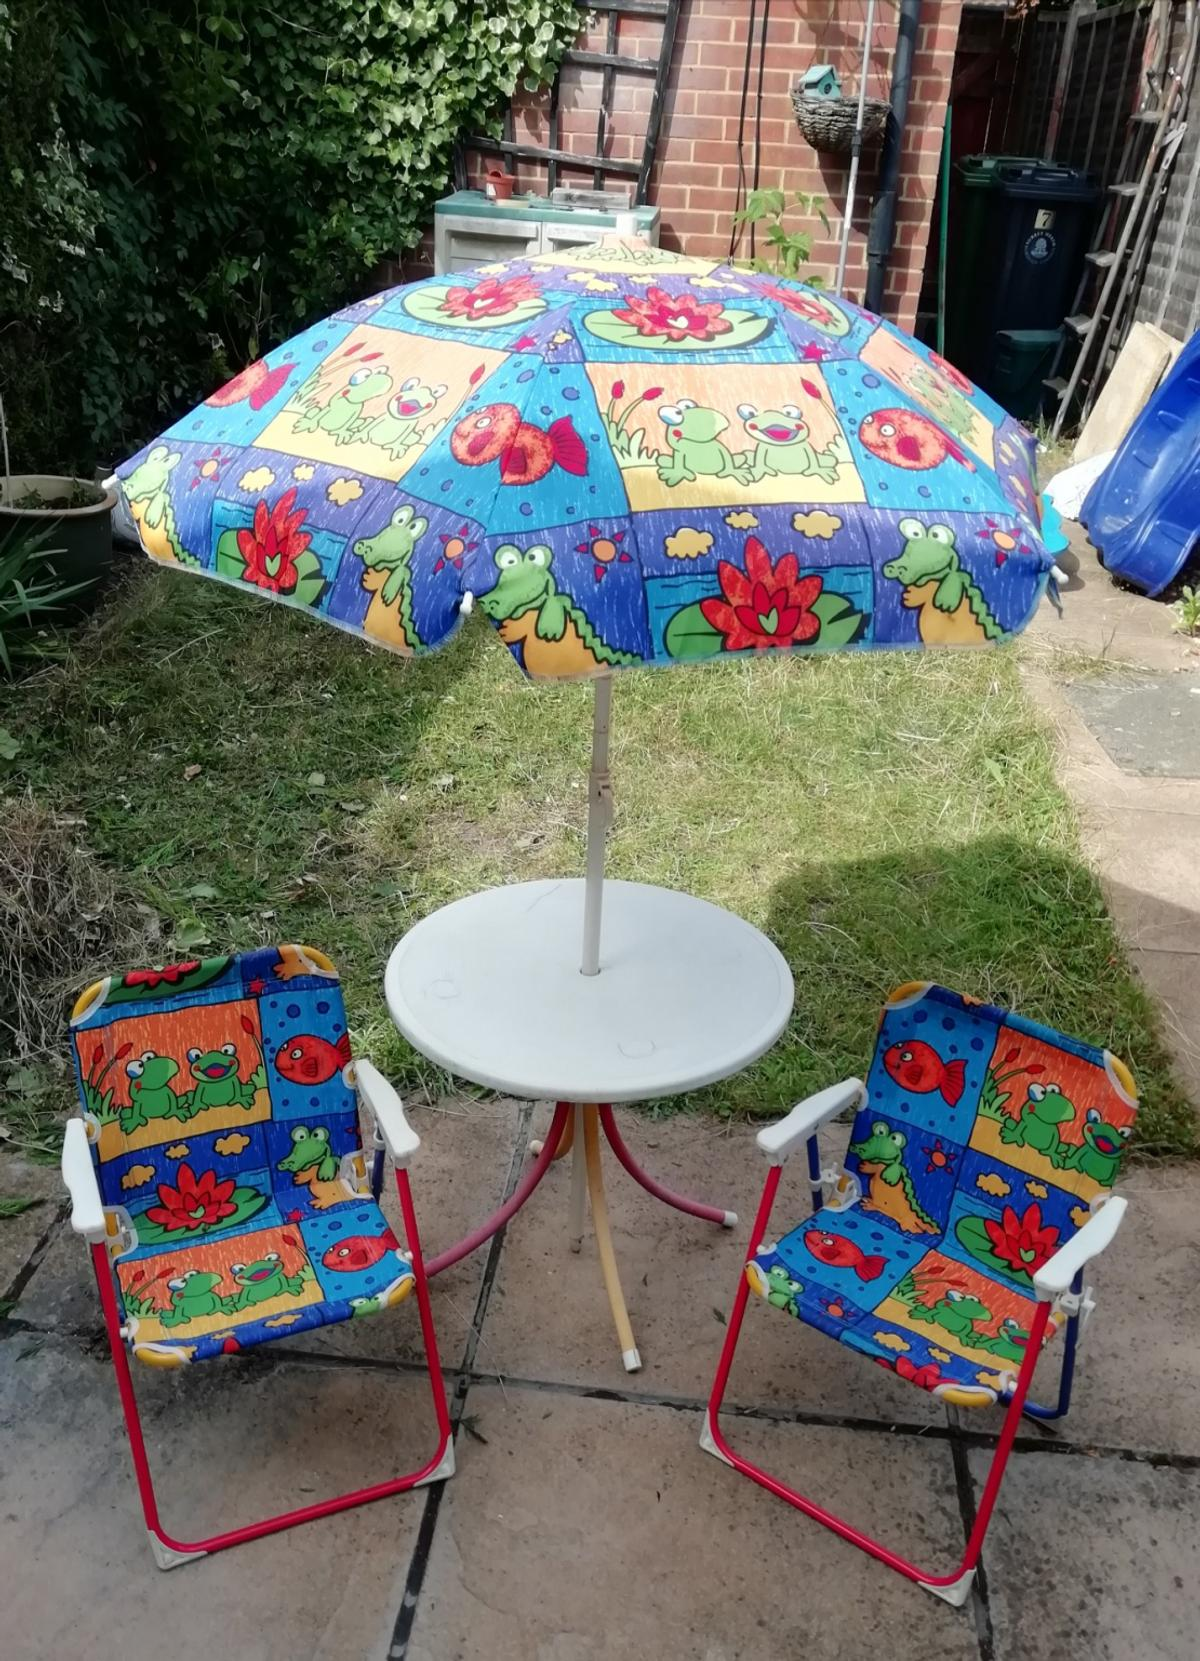 Marvelous Two Kids Folding Chairs In Gu16 Heath For 6 00 For Sale Caraccident5 Cool Chair Designs And Ideas Caraccident5Info